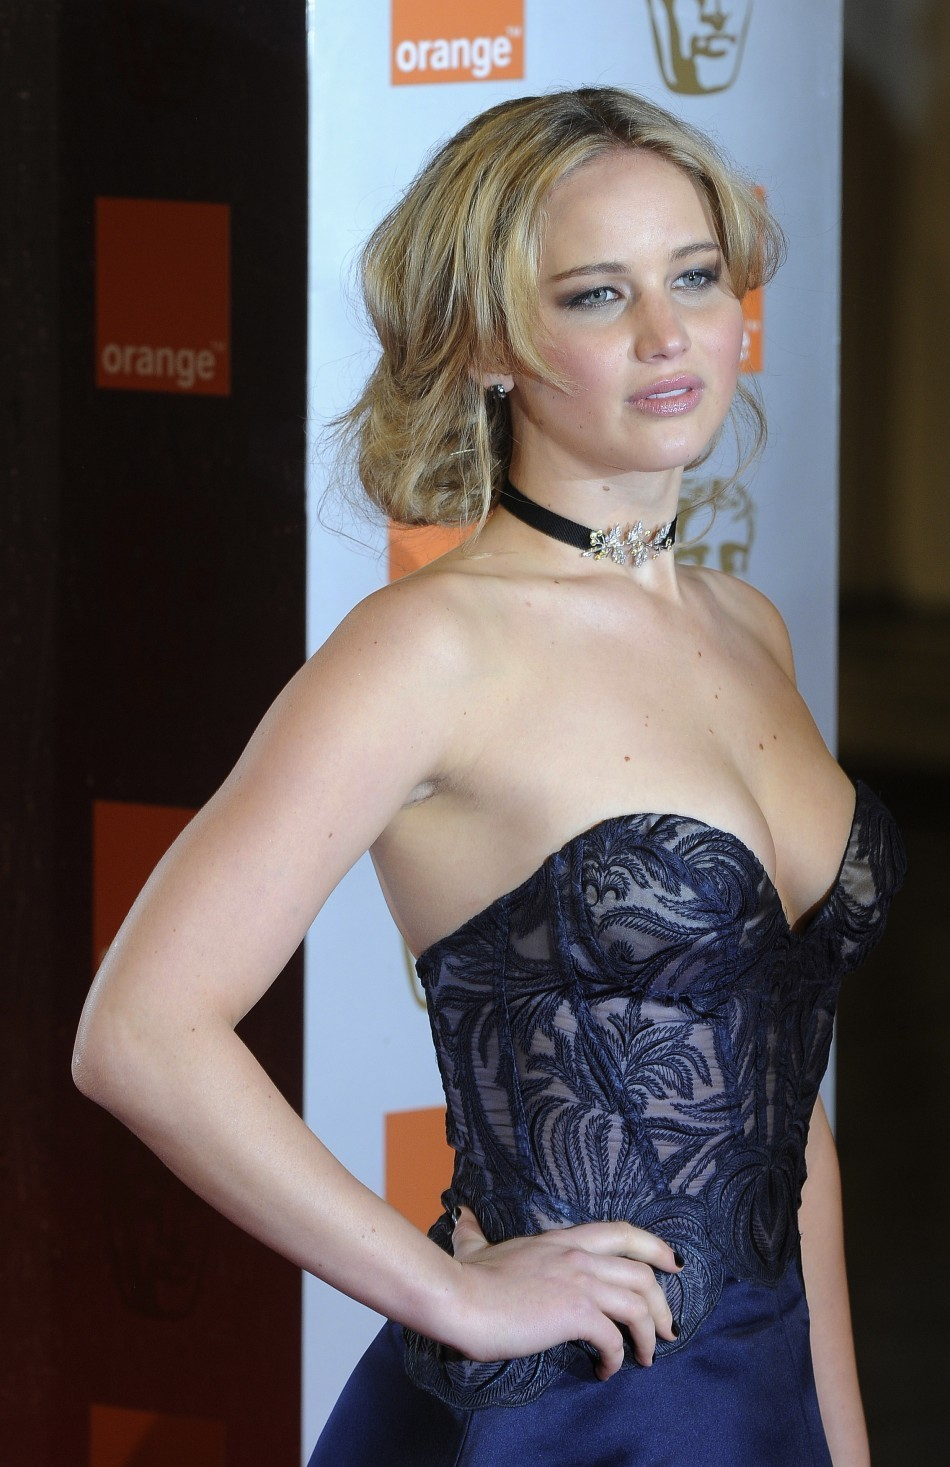 Silver Linings Playbook star Jennifer Lawrence has bagged the second place/Reuters